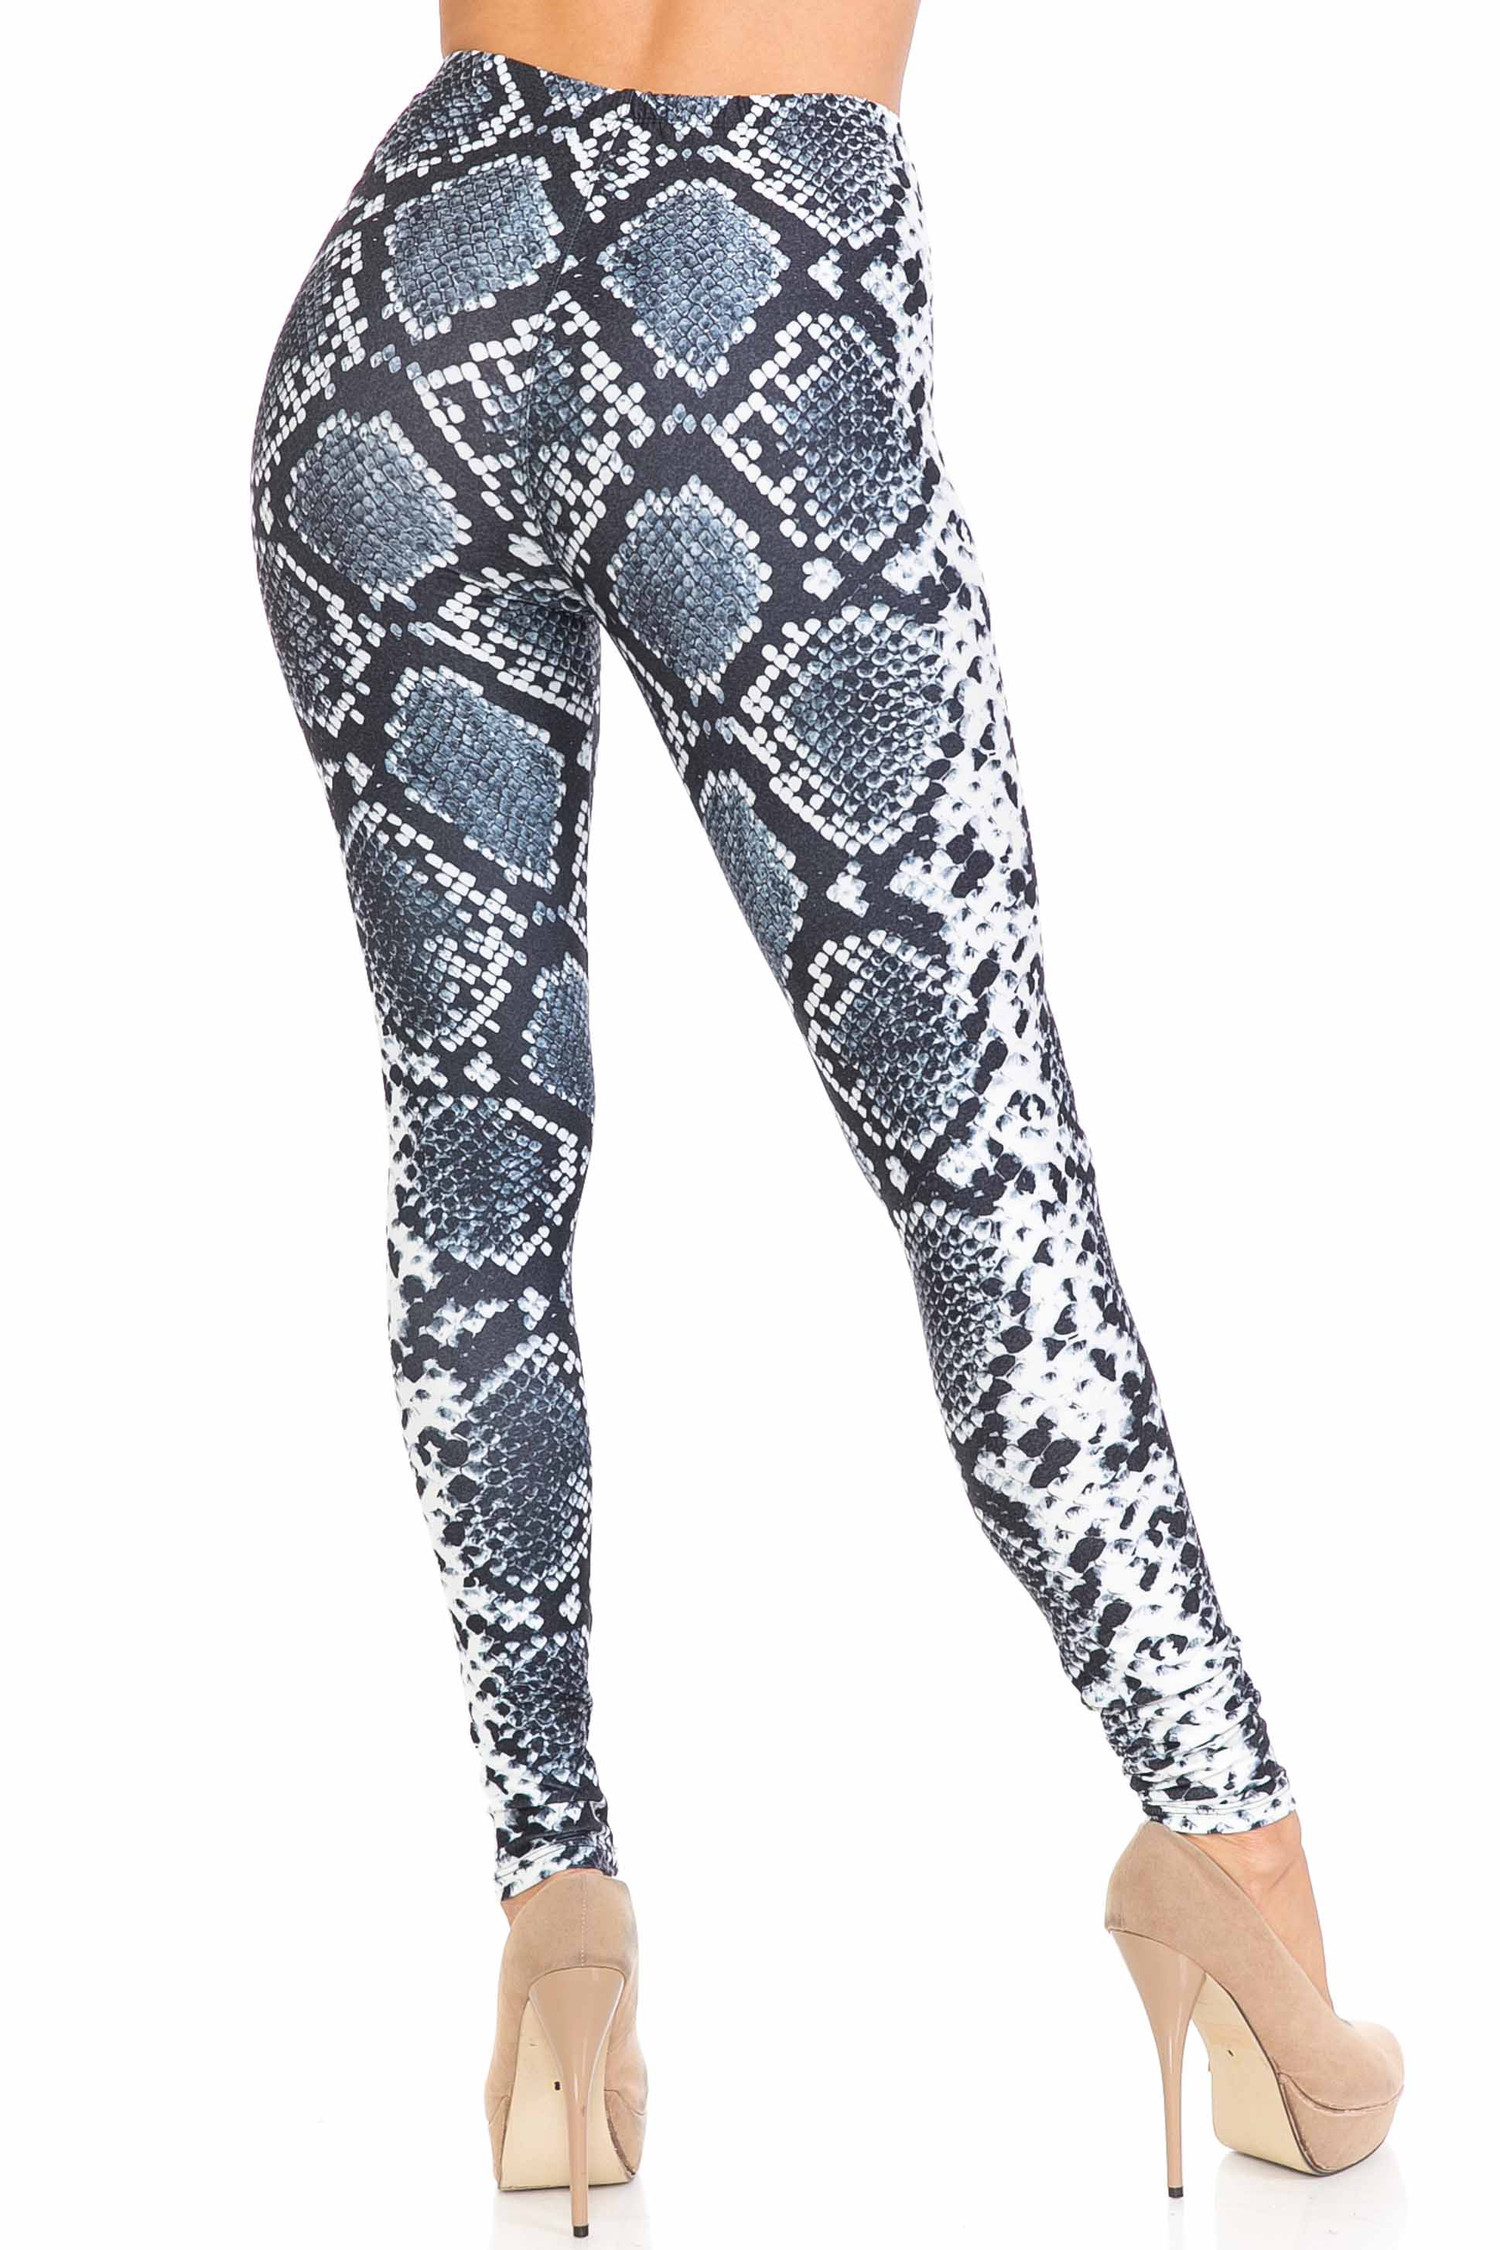 Back view of our sexy Creamy Soft Steel Blue Boa Plus Size Leggings - USA Fashion™ with a sassy all over reptile print.